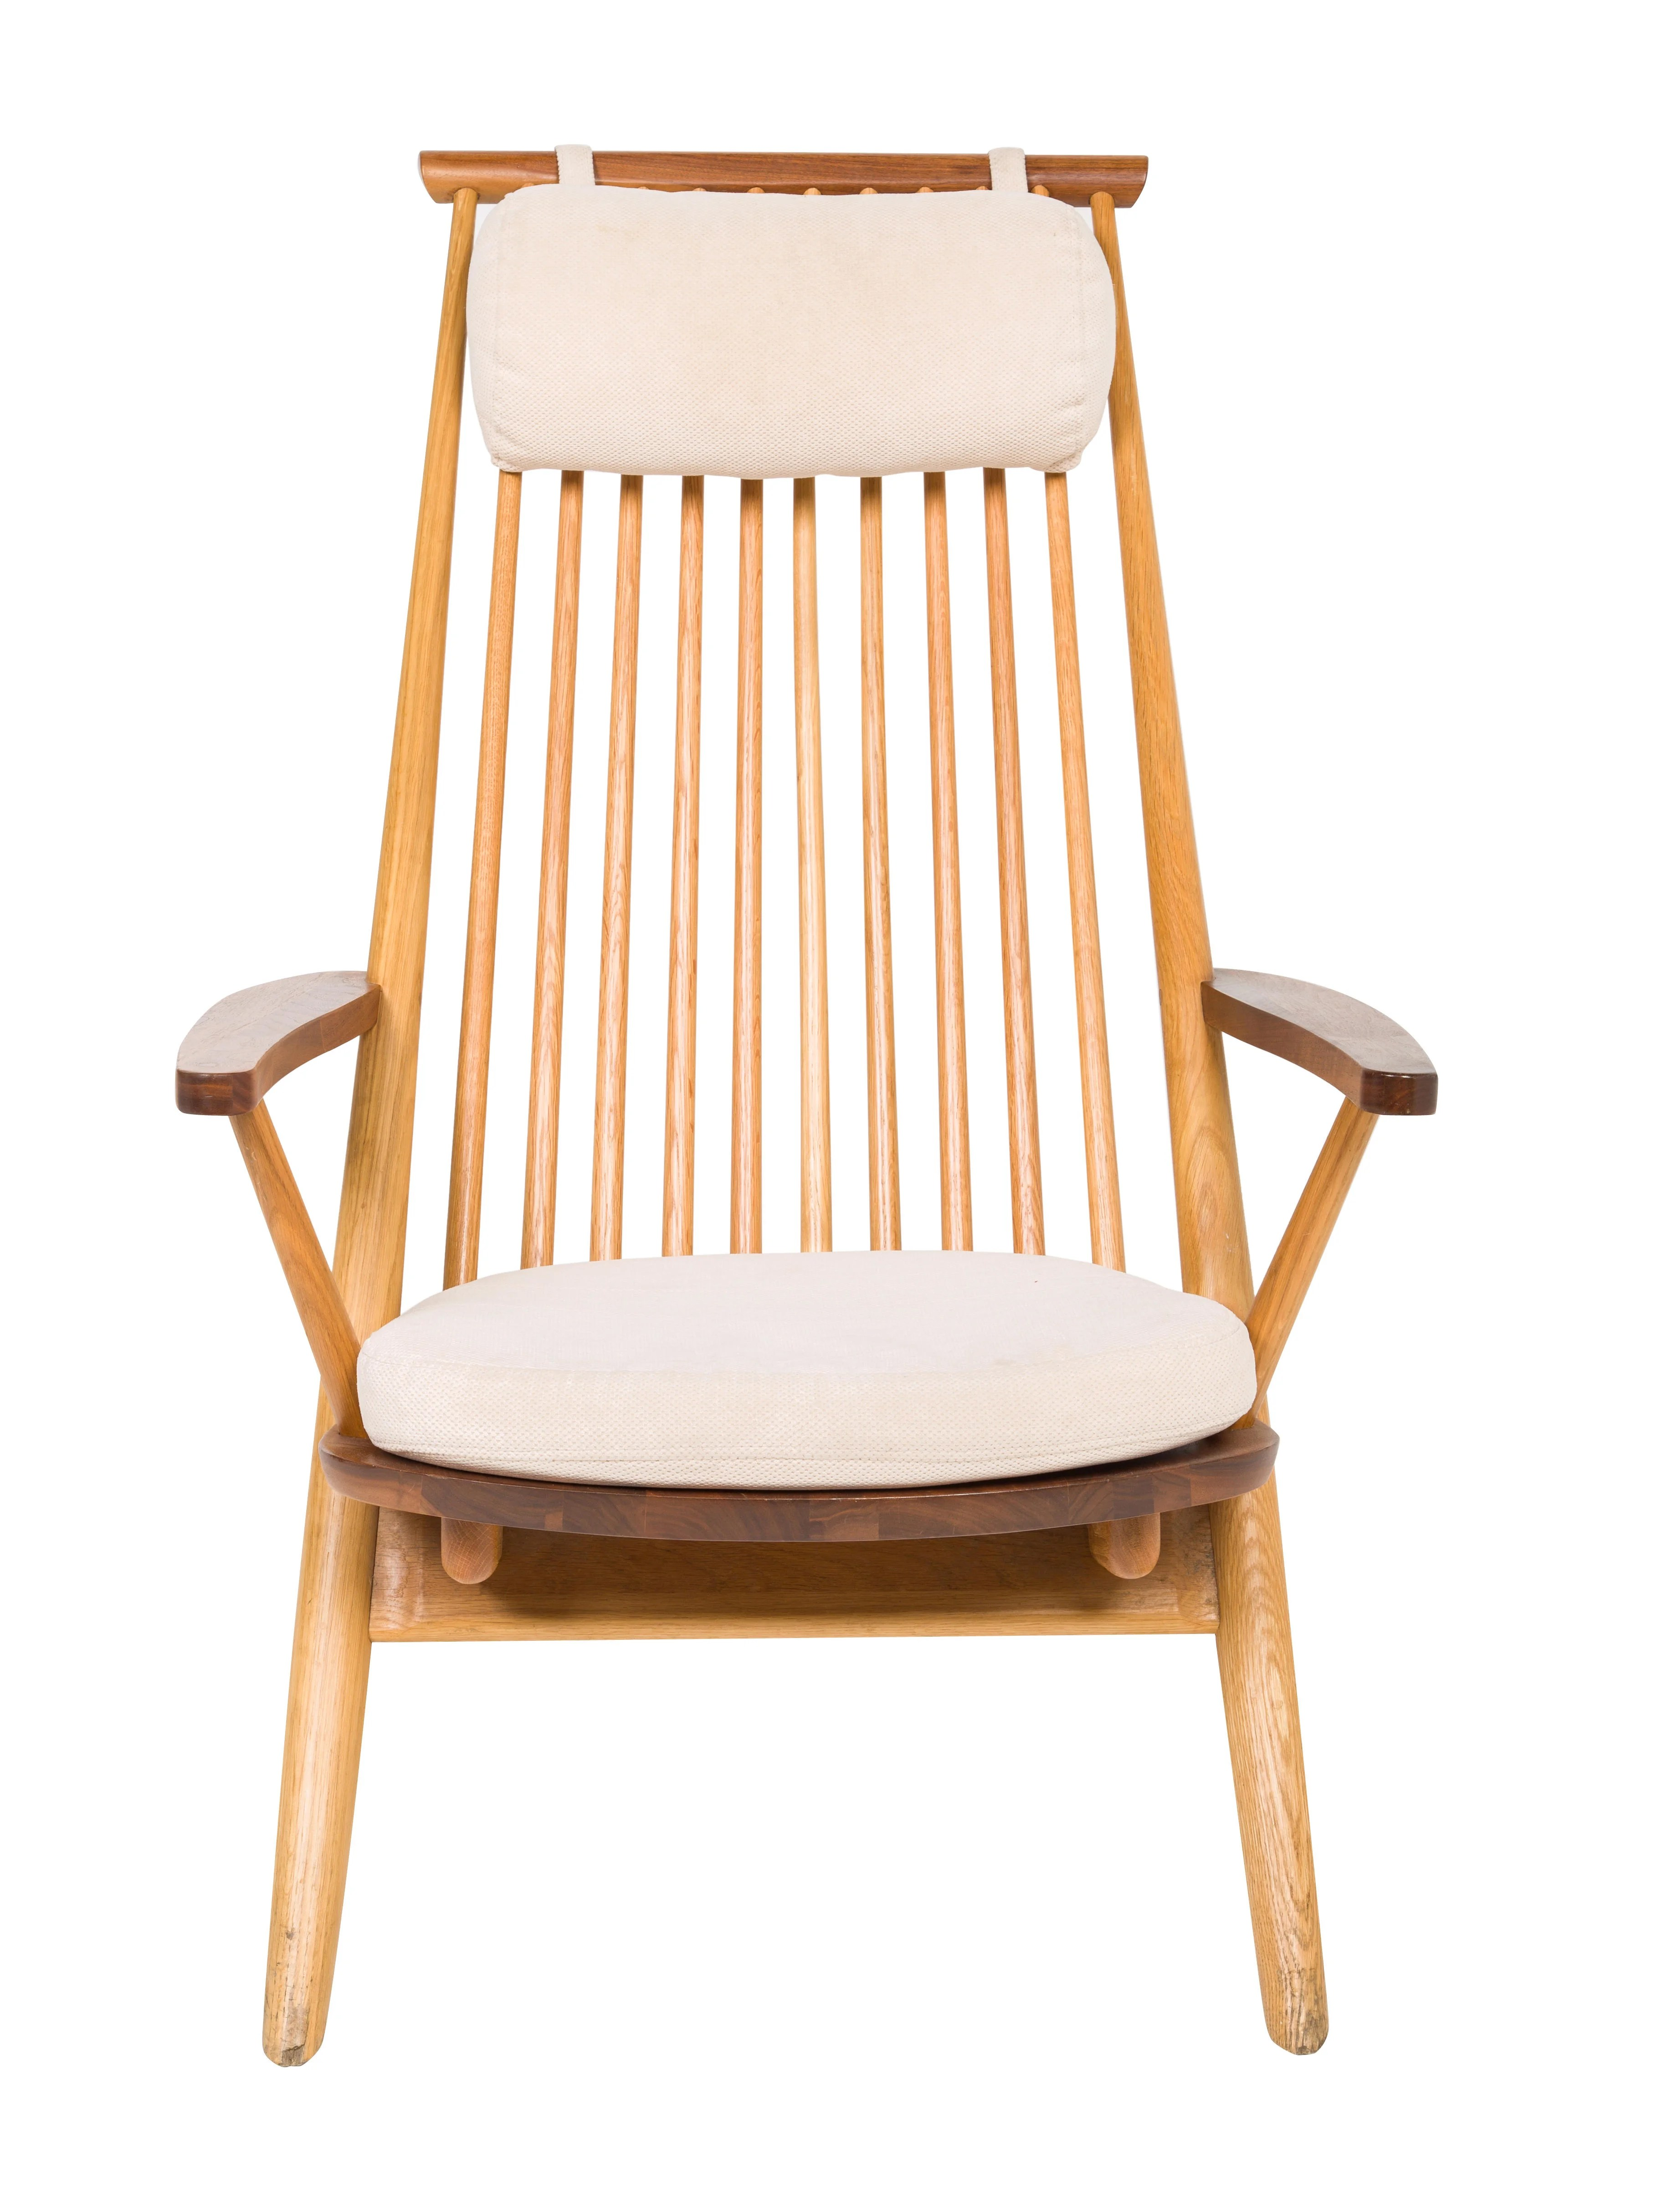 Danish Lounge Chair  Furniture  CHAIR20429  The RealReal